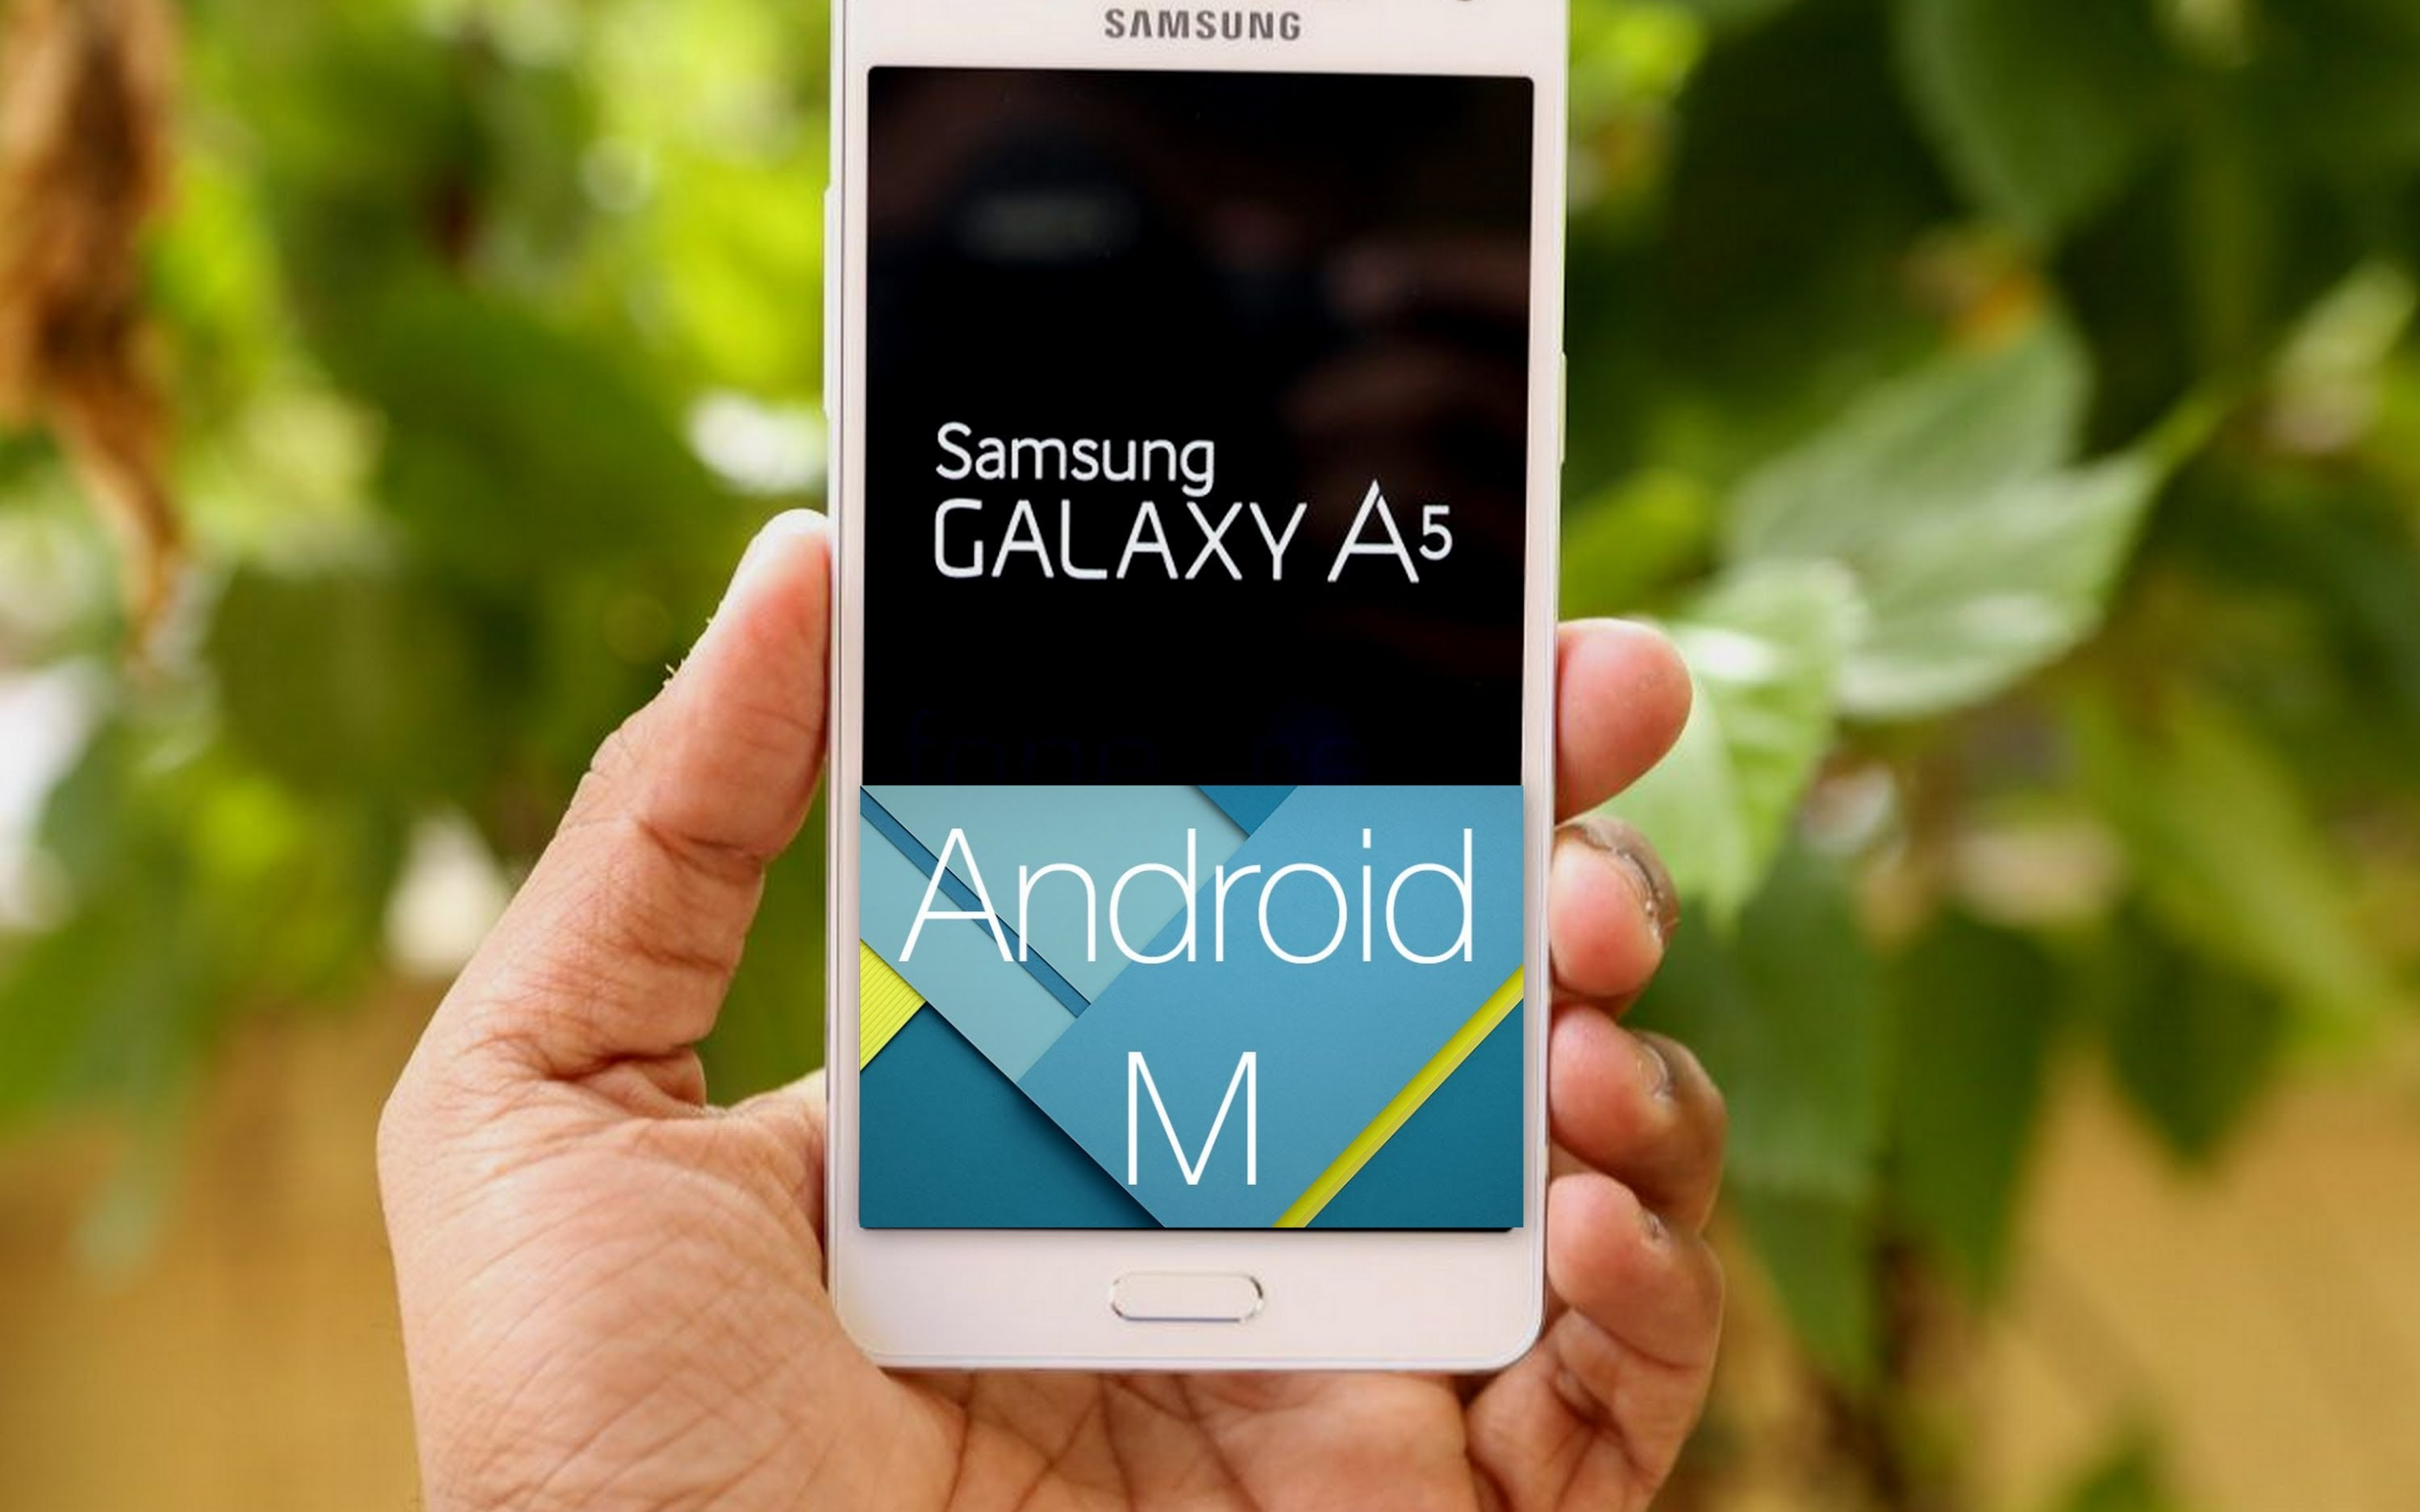 Galaxy-A5-SM-A500F-Android-6.0.1